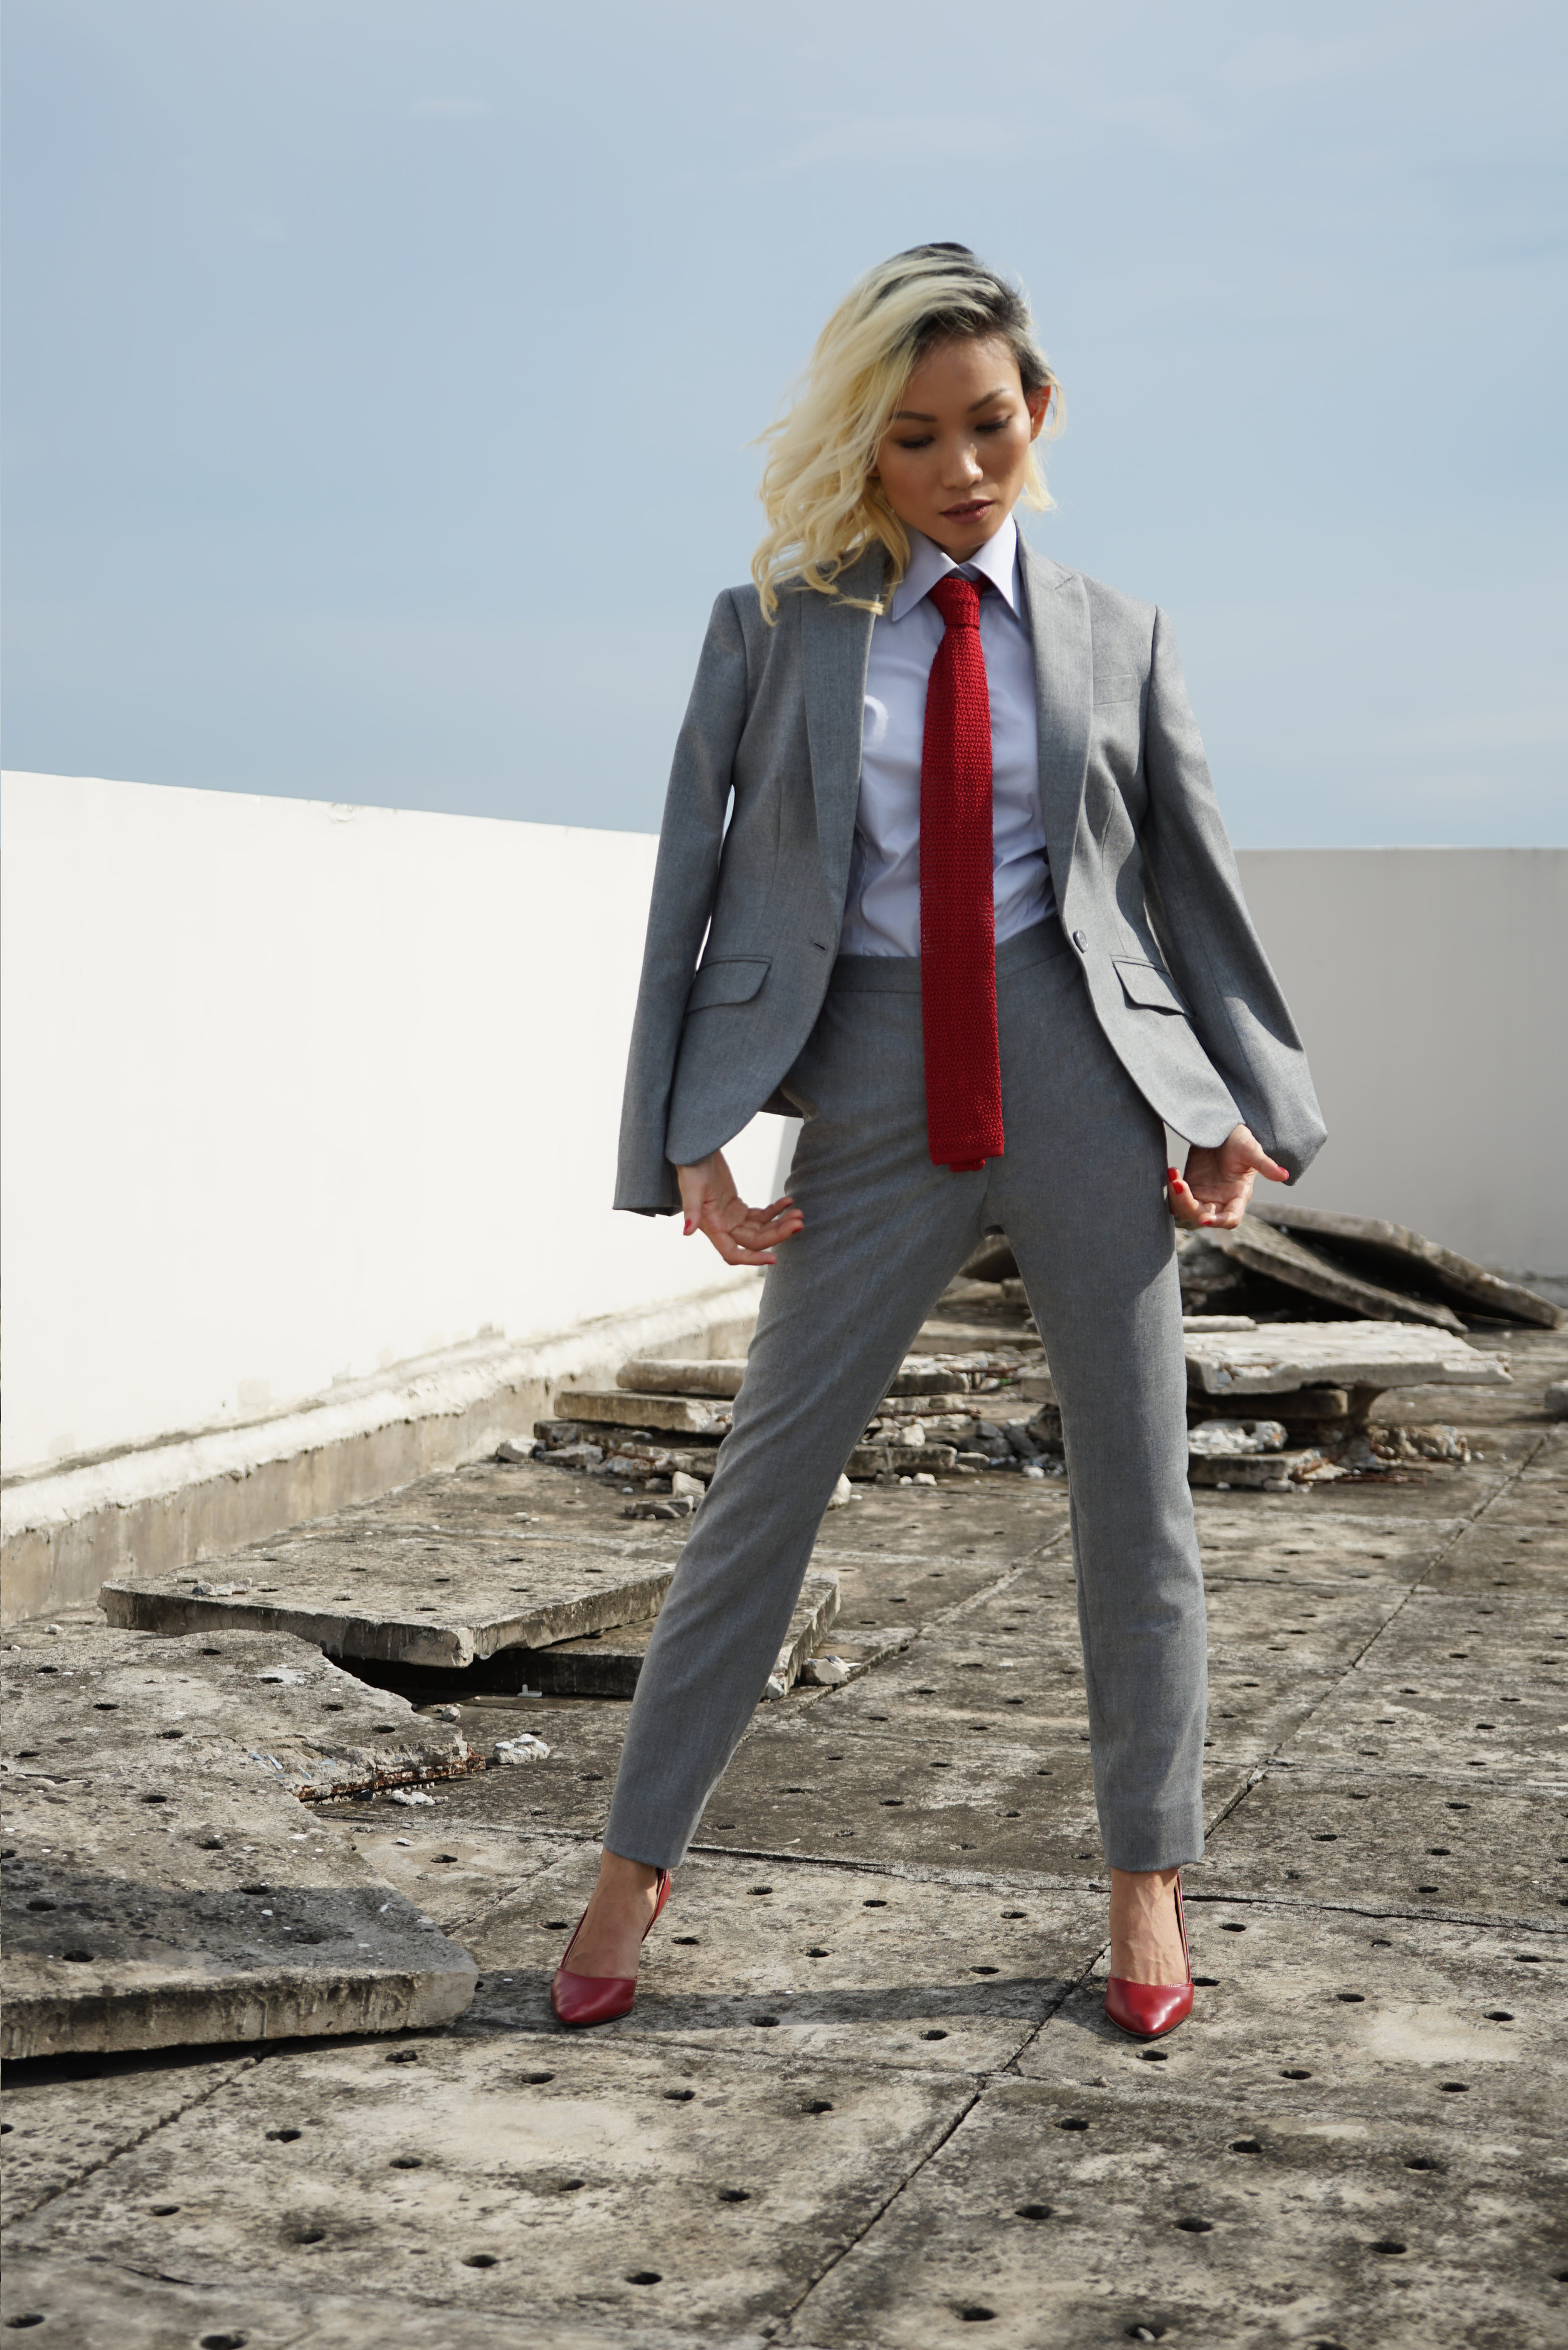 ladies' light grey pant suit with red tie and heels